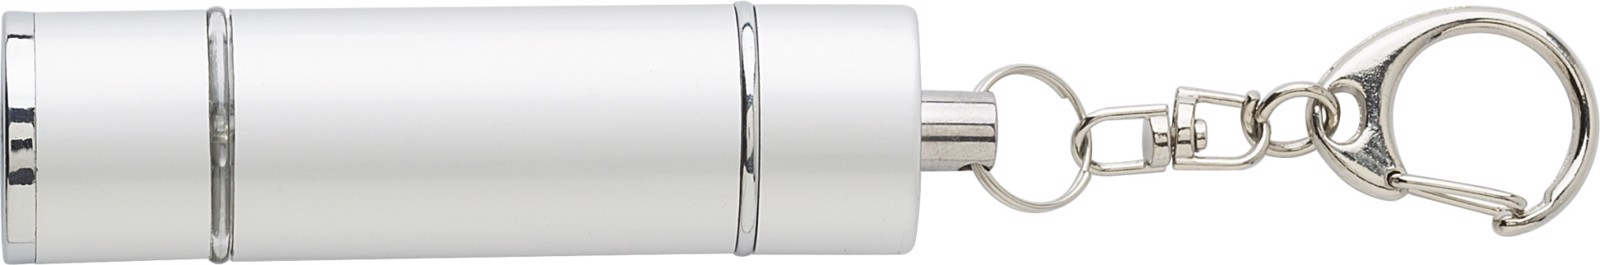 ABS 2-in-1 key holder - Silver